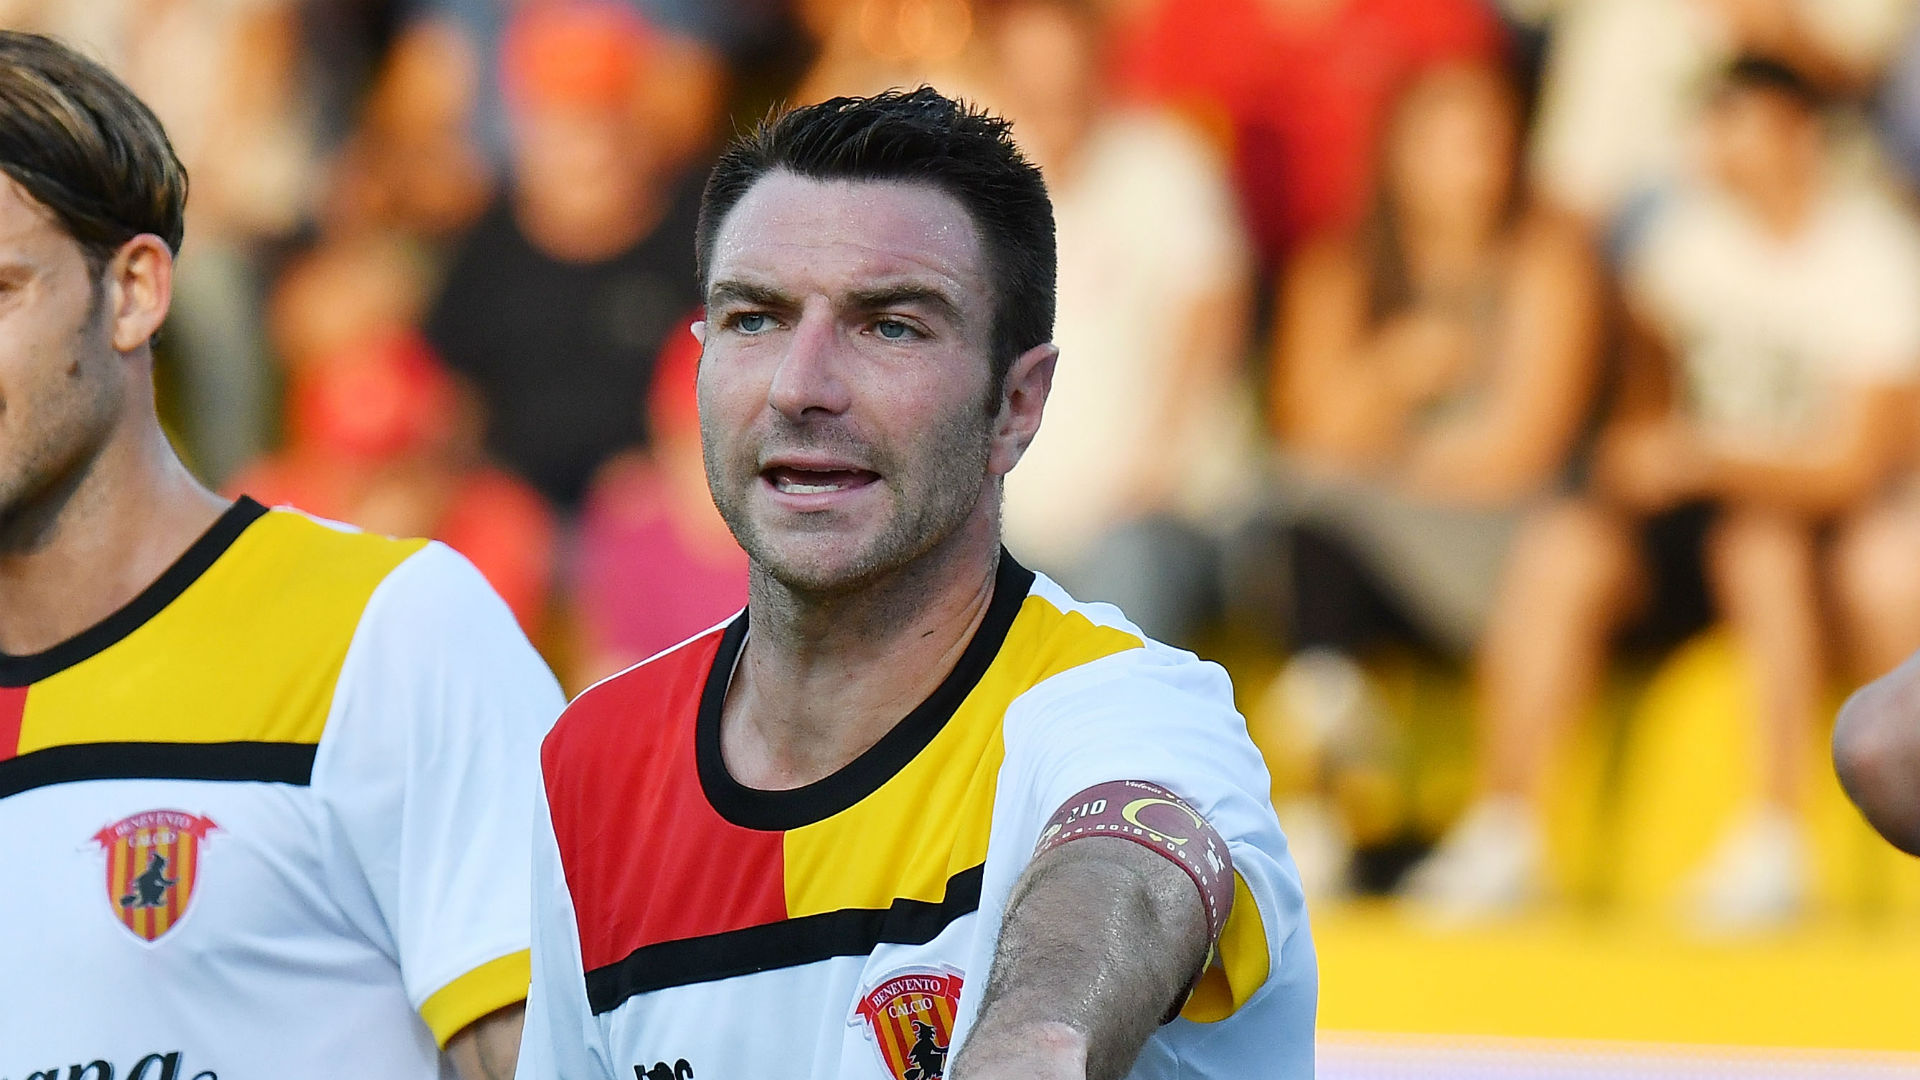 Benevento Captain Fabio Lucioni Fails Doping Test